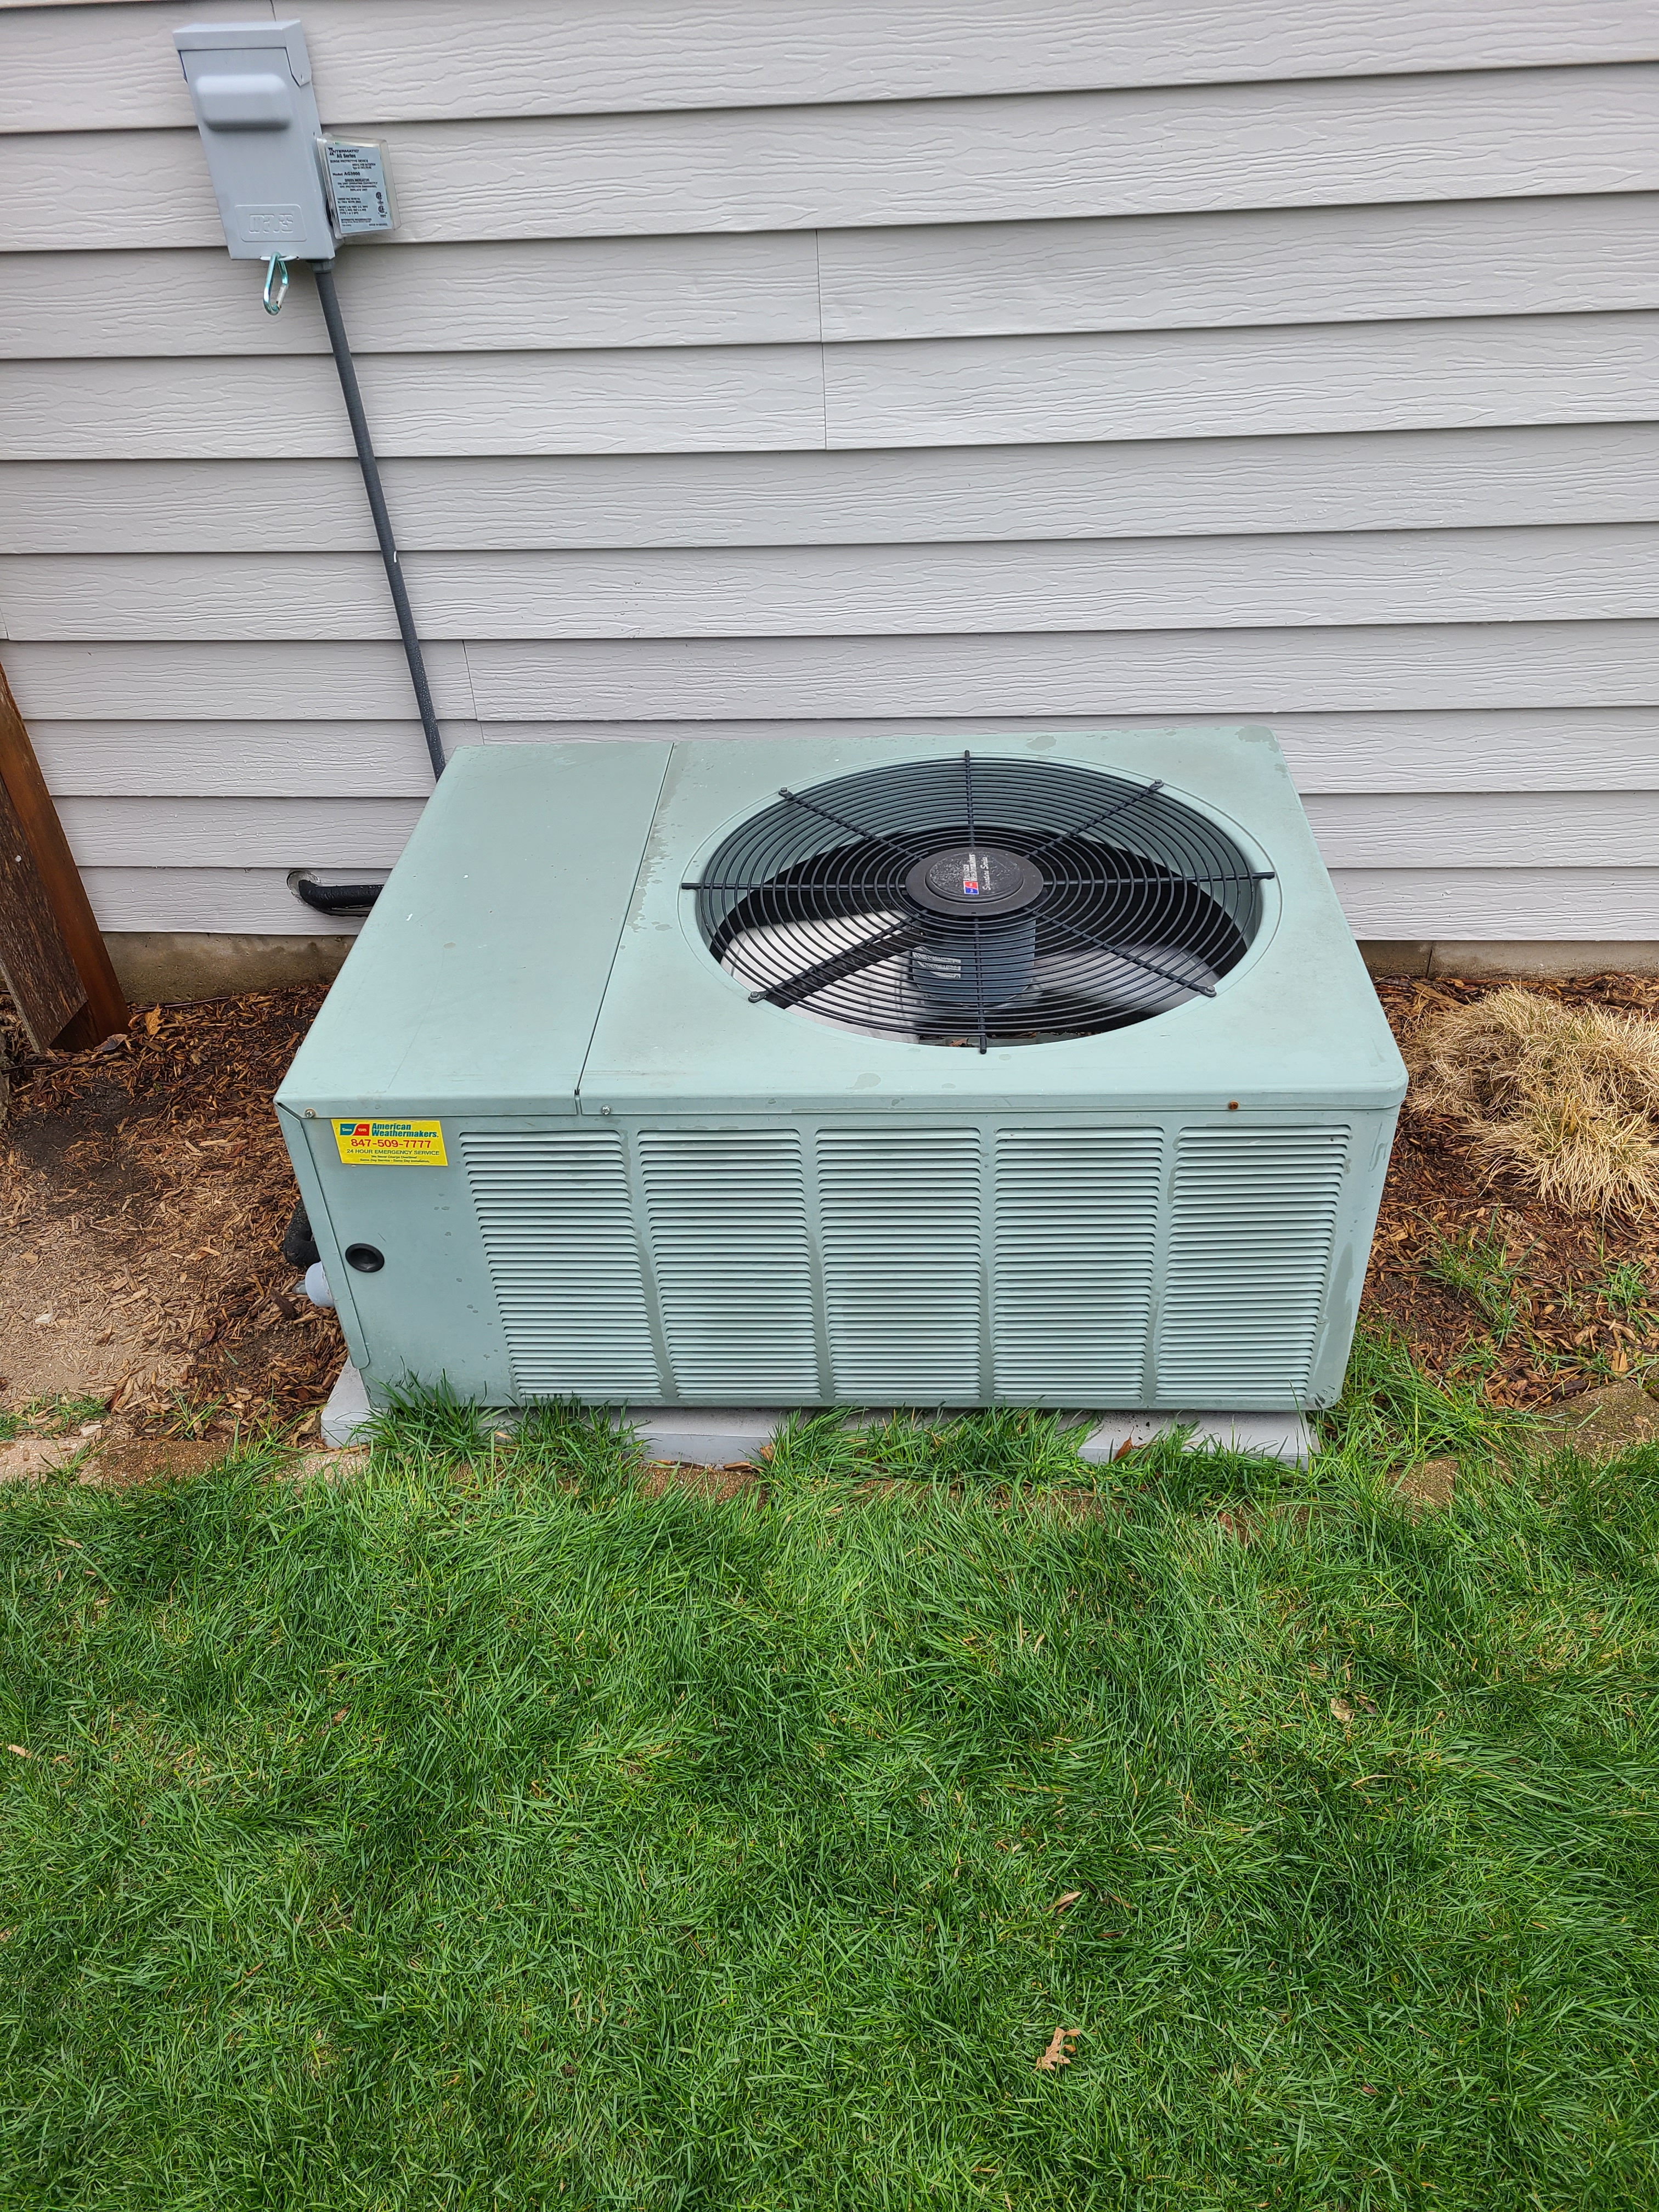 Performed routine maintenance on a RHEEM unit. Checked temperatures, pressures, volts, amperage, and microfarats. Washed condenser coil.